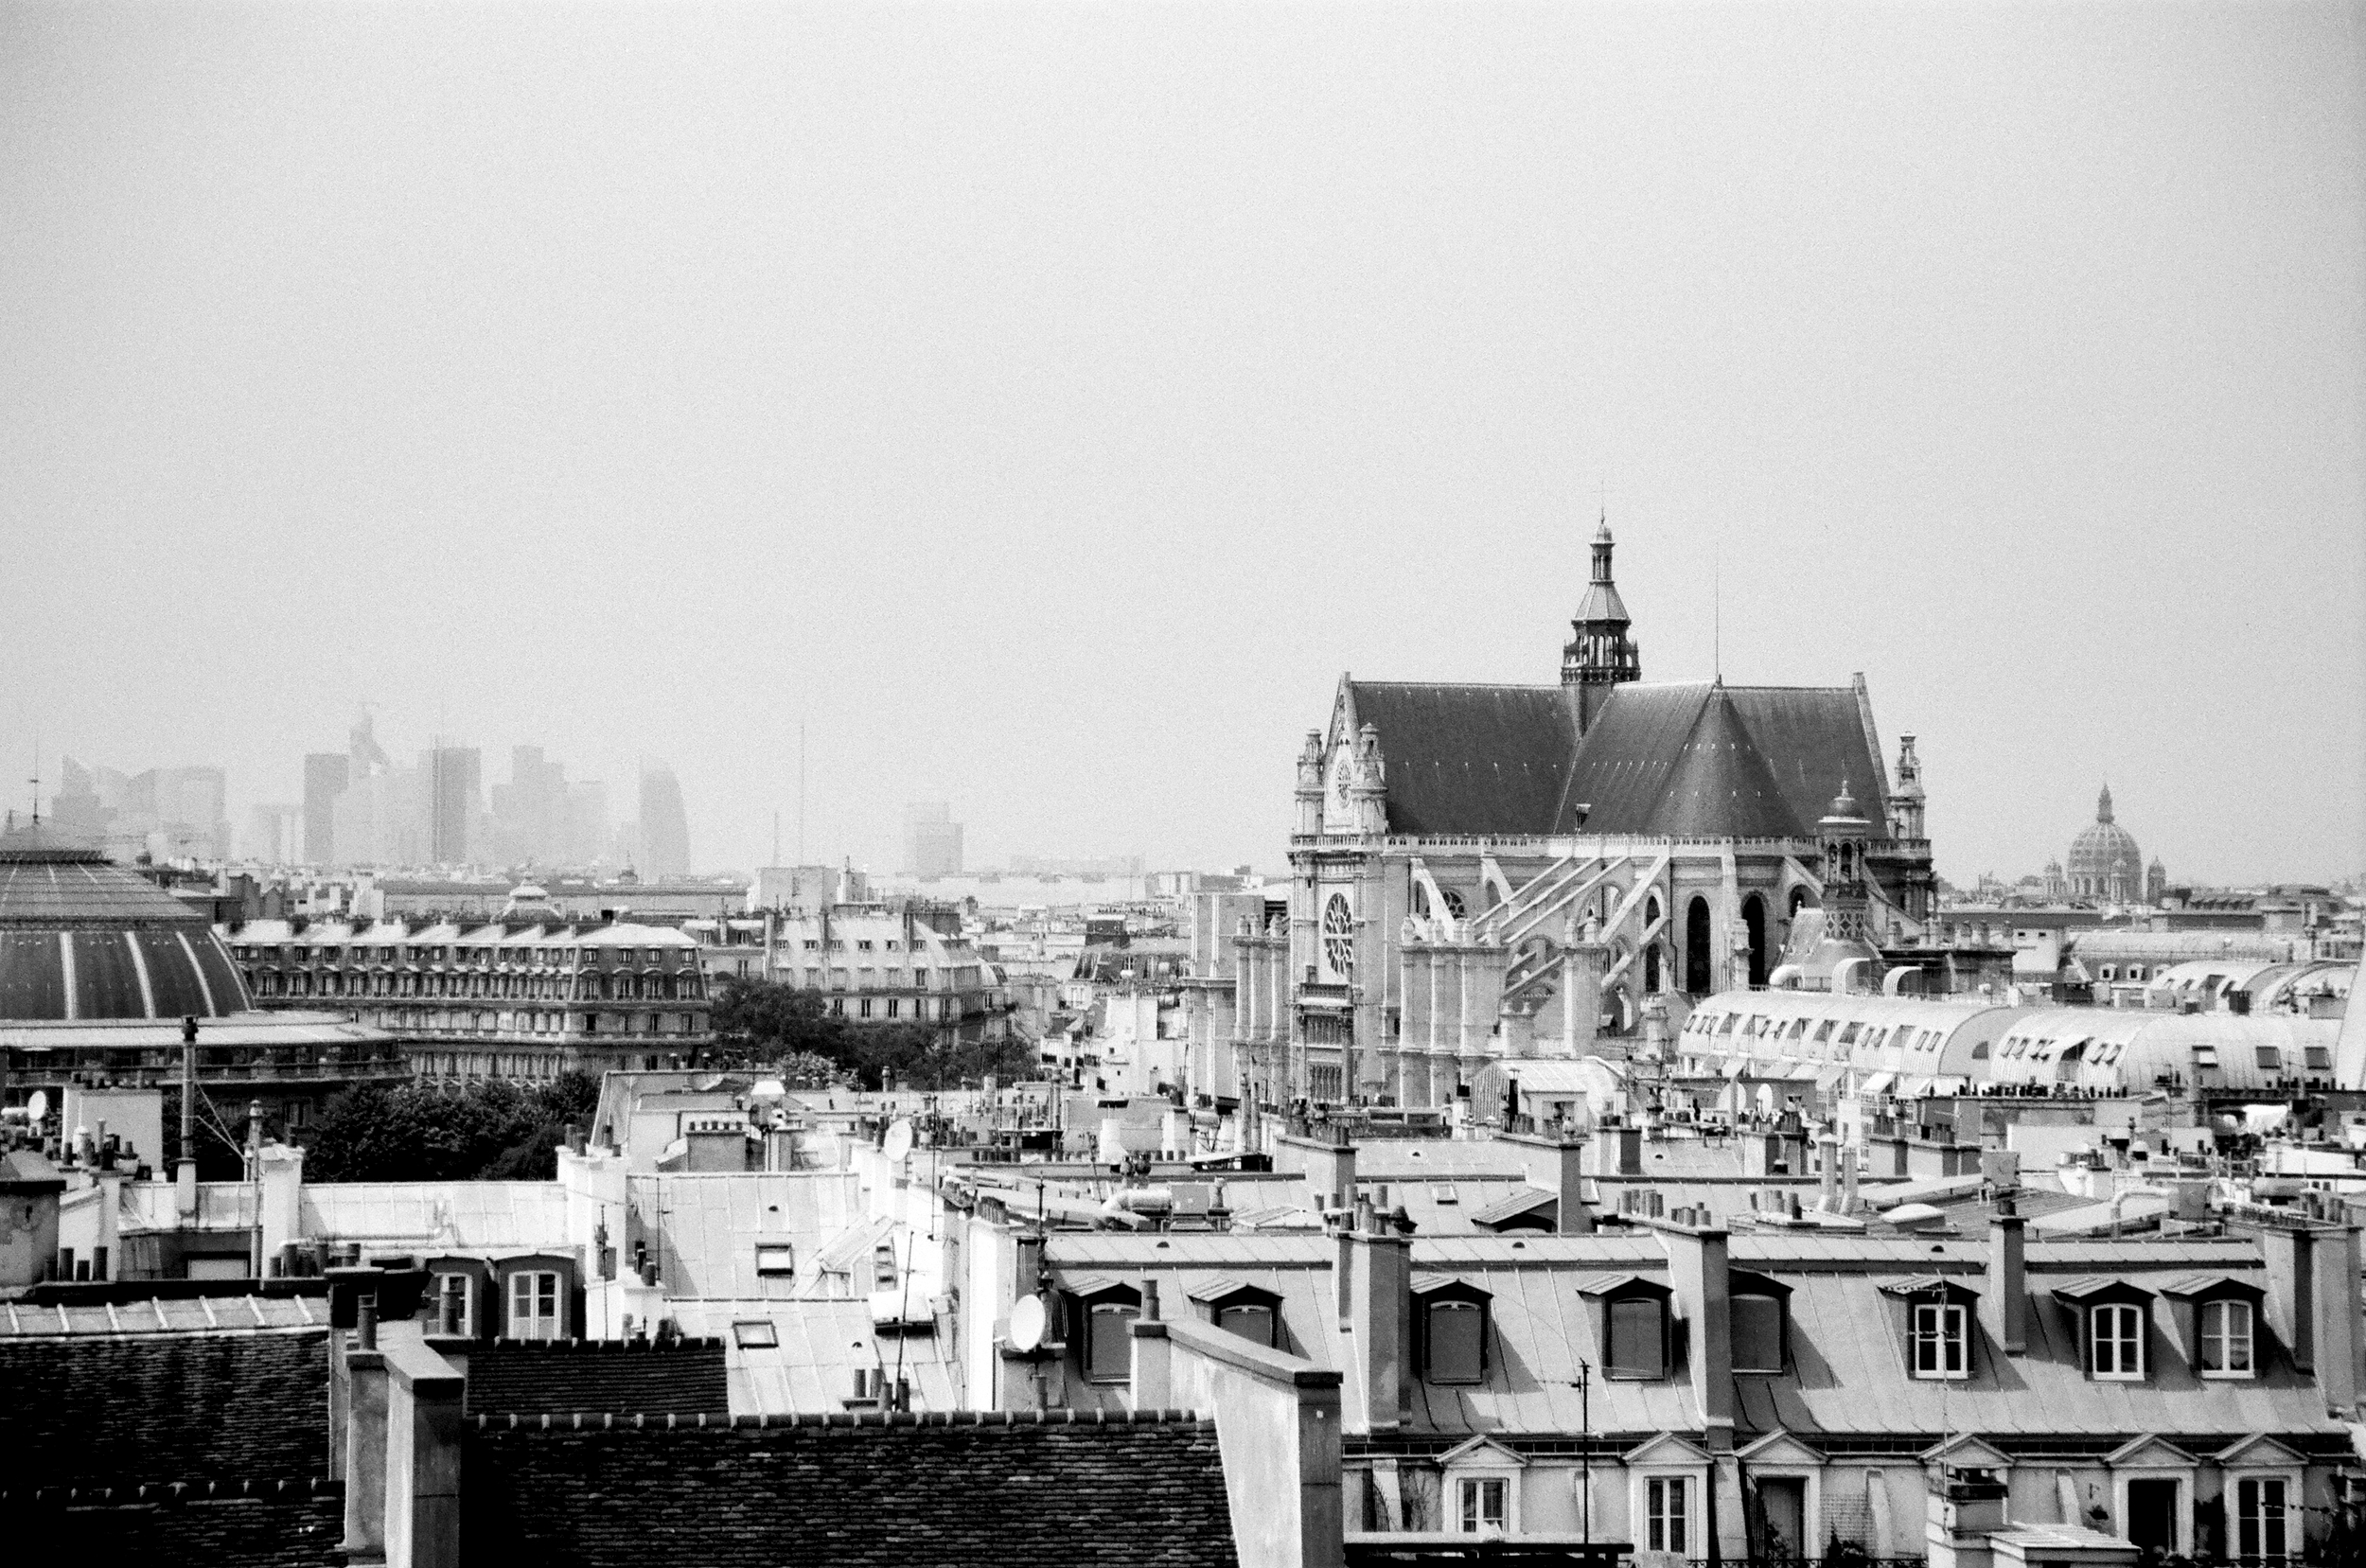 Paris - France B&W Image 5.jpg